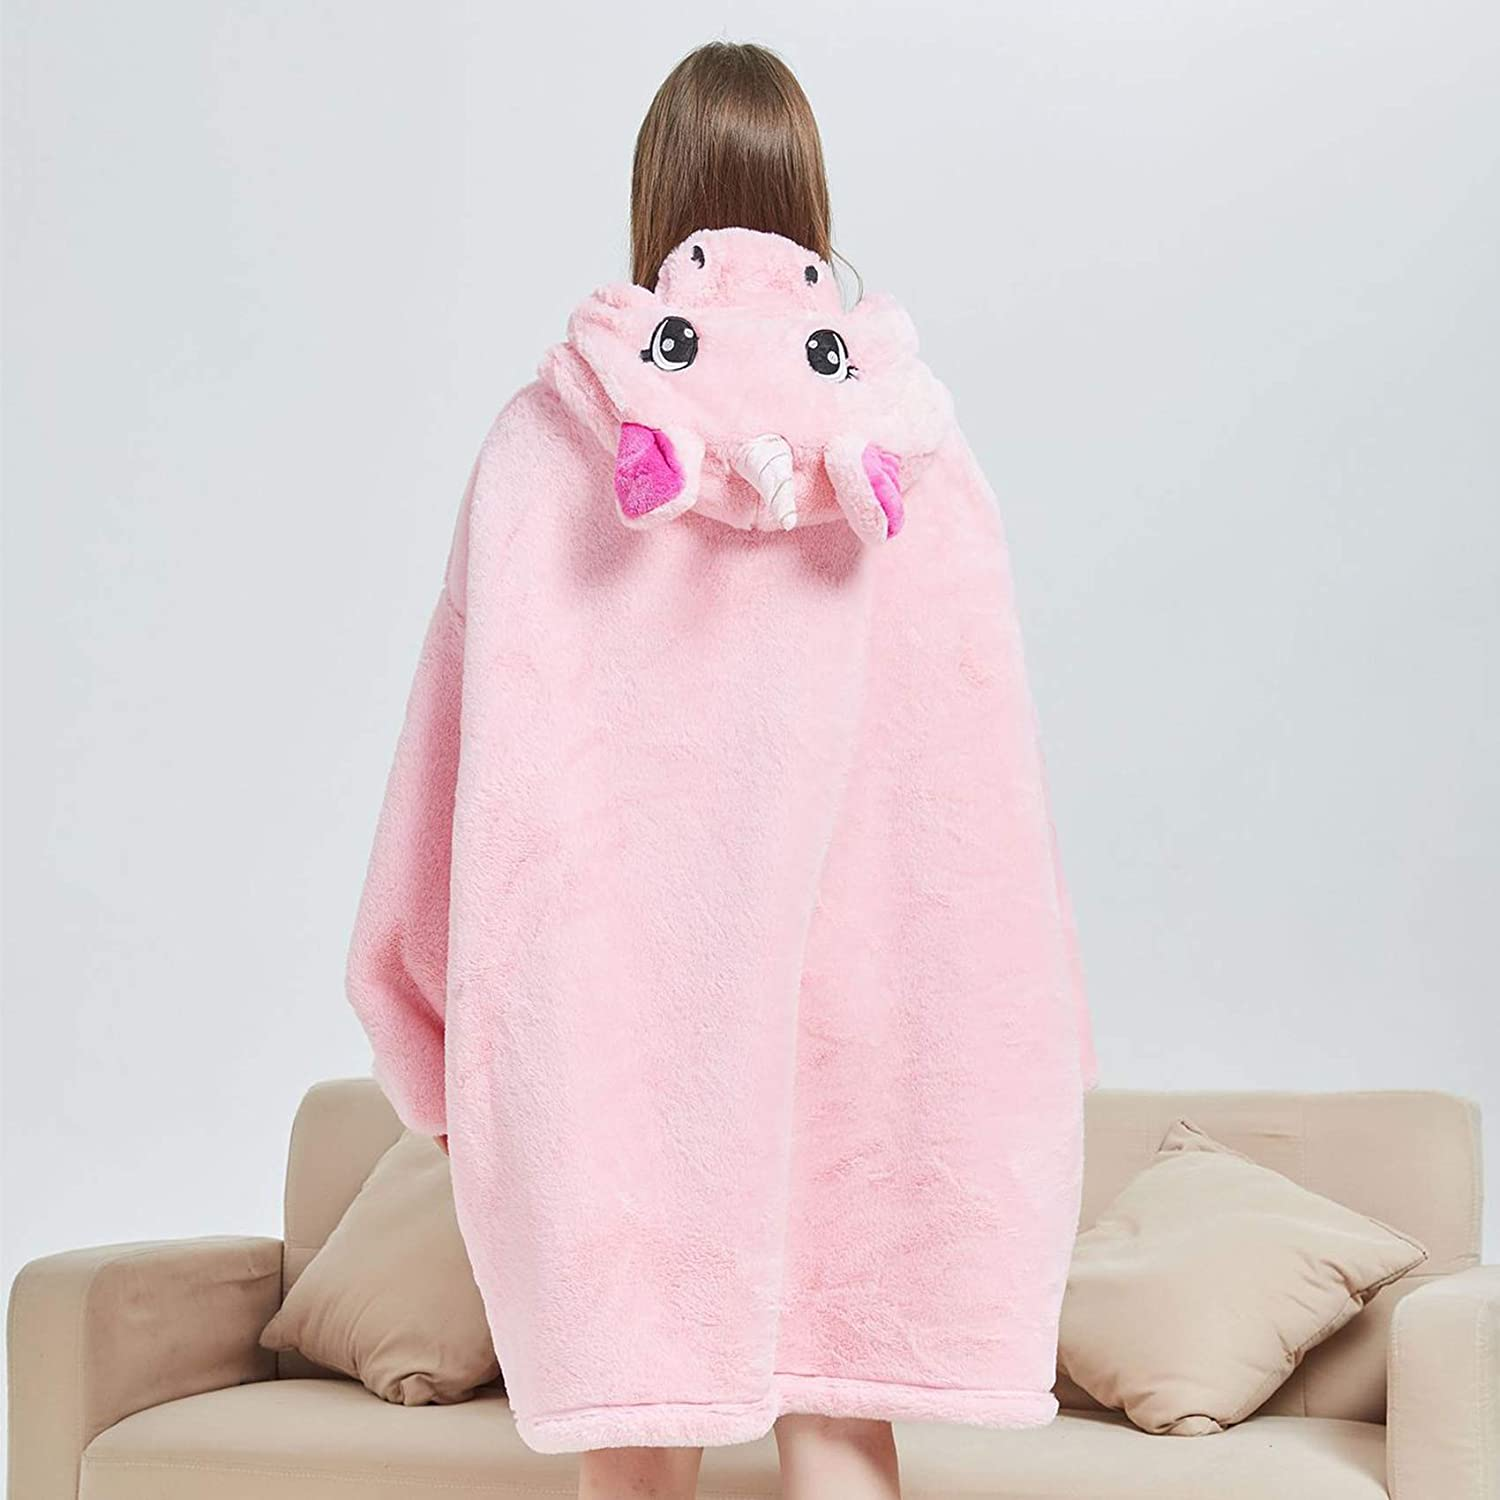 Wearable Sherpa Blanket with Animal Hood TV Blanket IvyH Oversized Hoodie Blanket